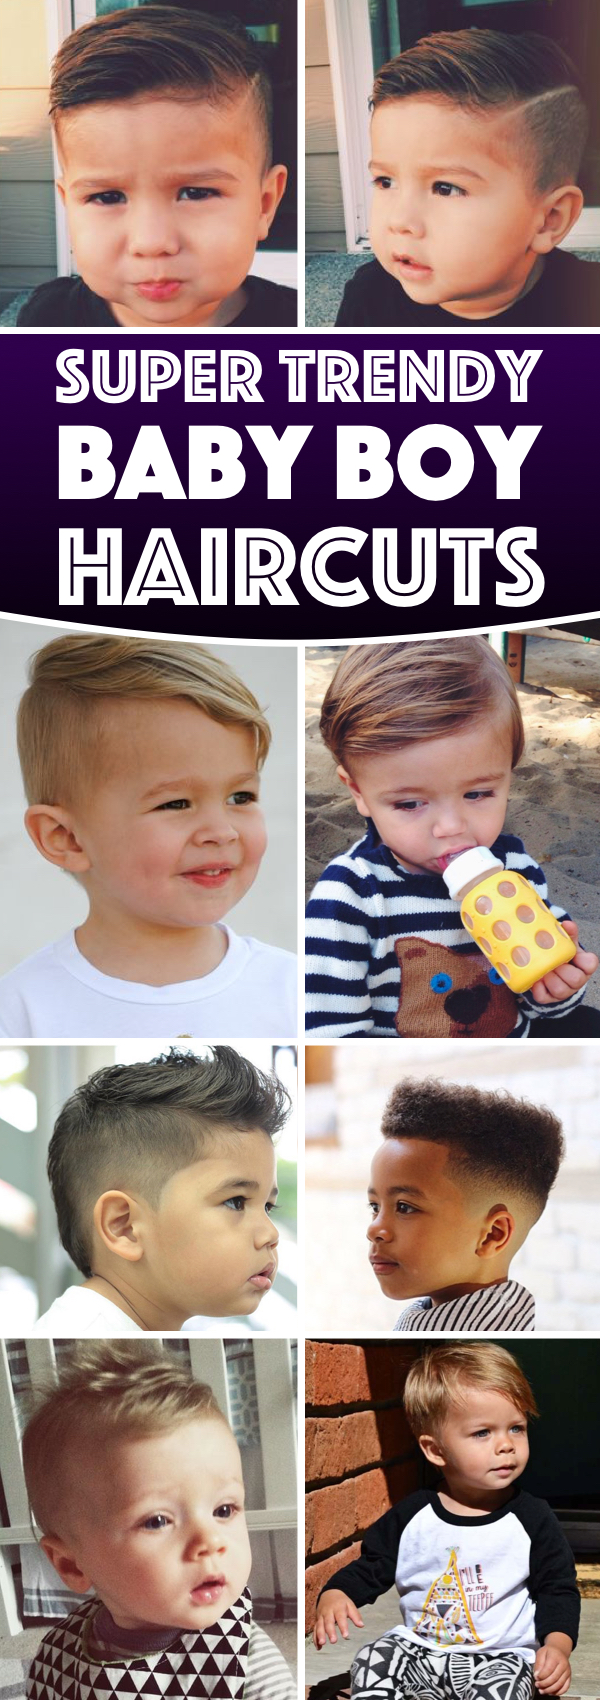 15 super trendy baby boy haircuts charming your little one's